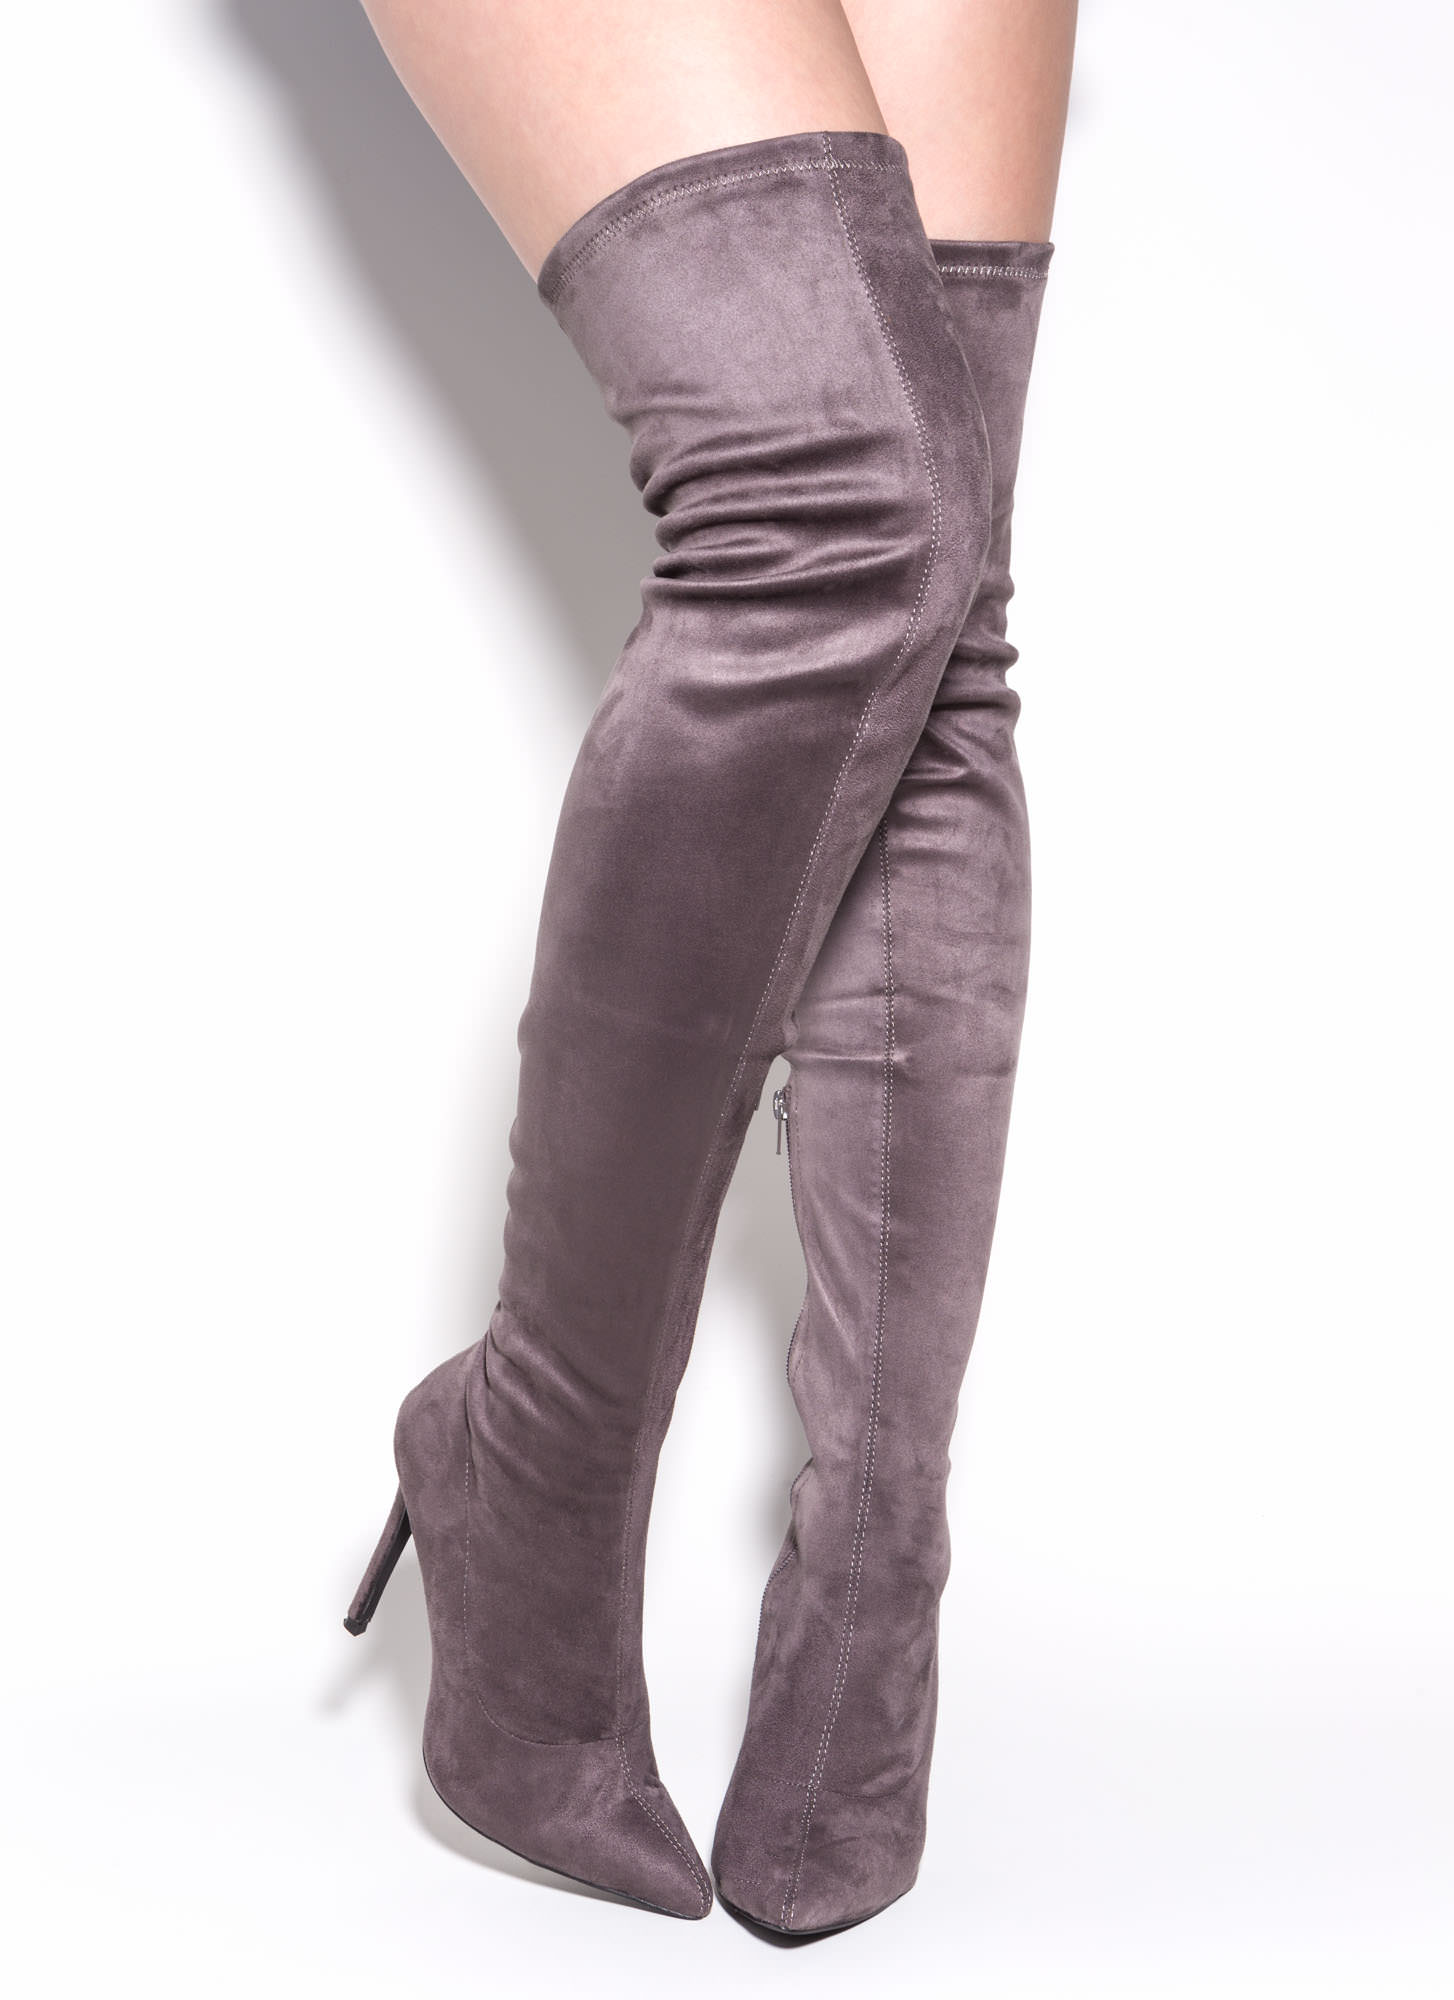 Story Chic Thigh-High Boots MAROON TAUPE OLIVE BLACK GREY - GoJane.com